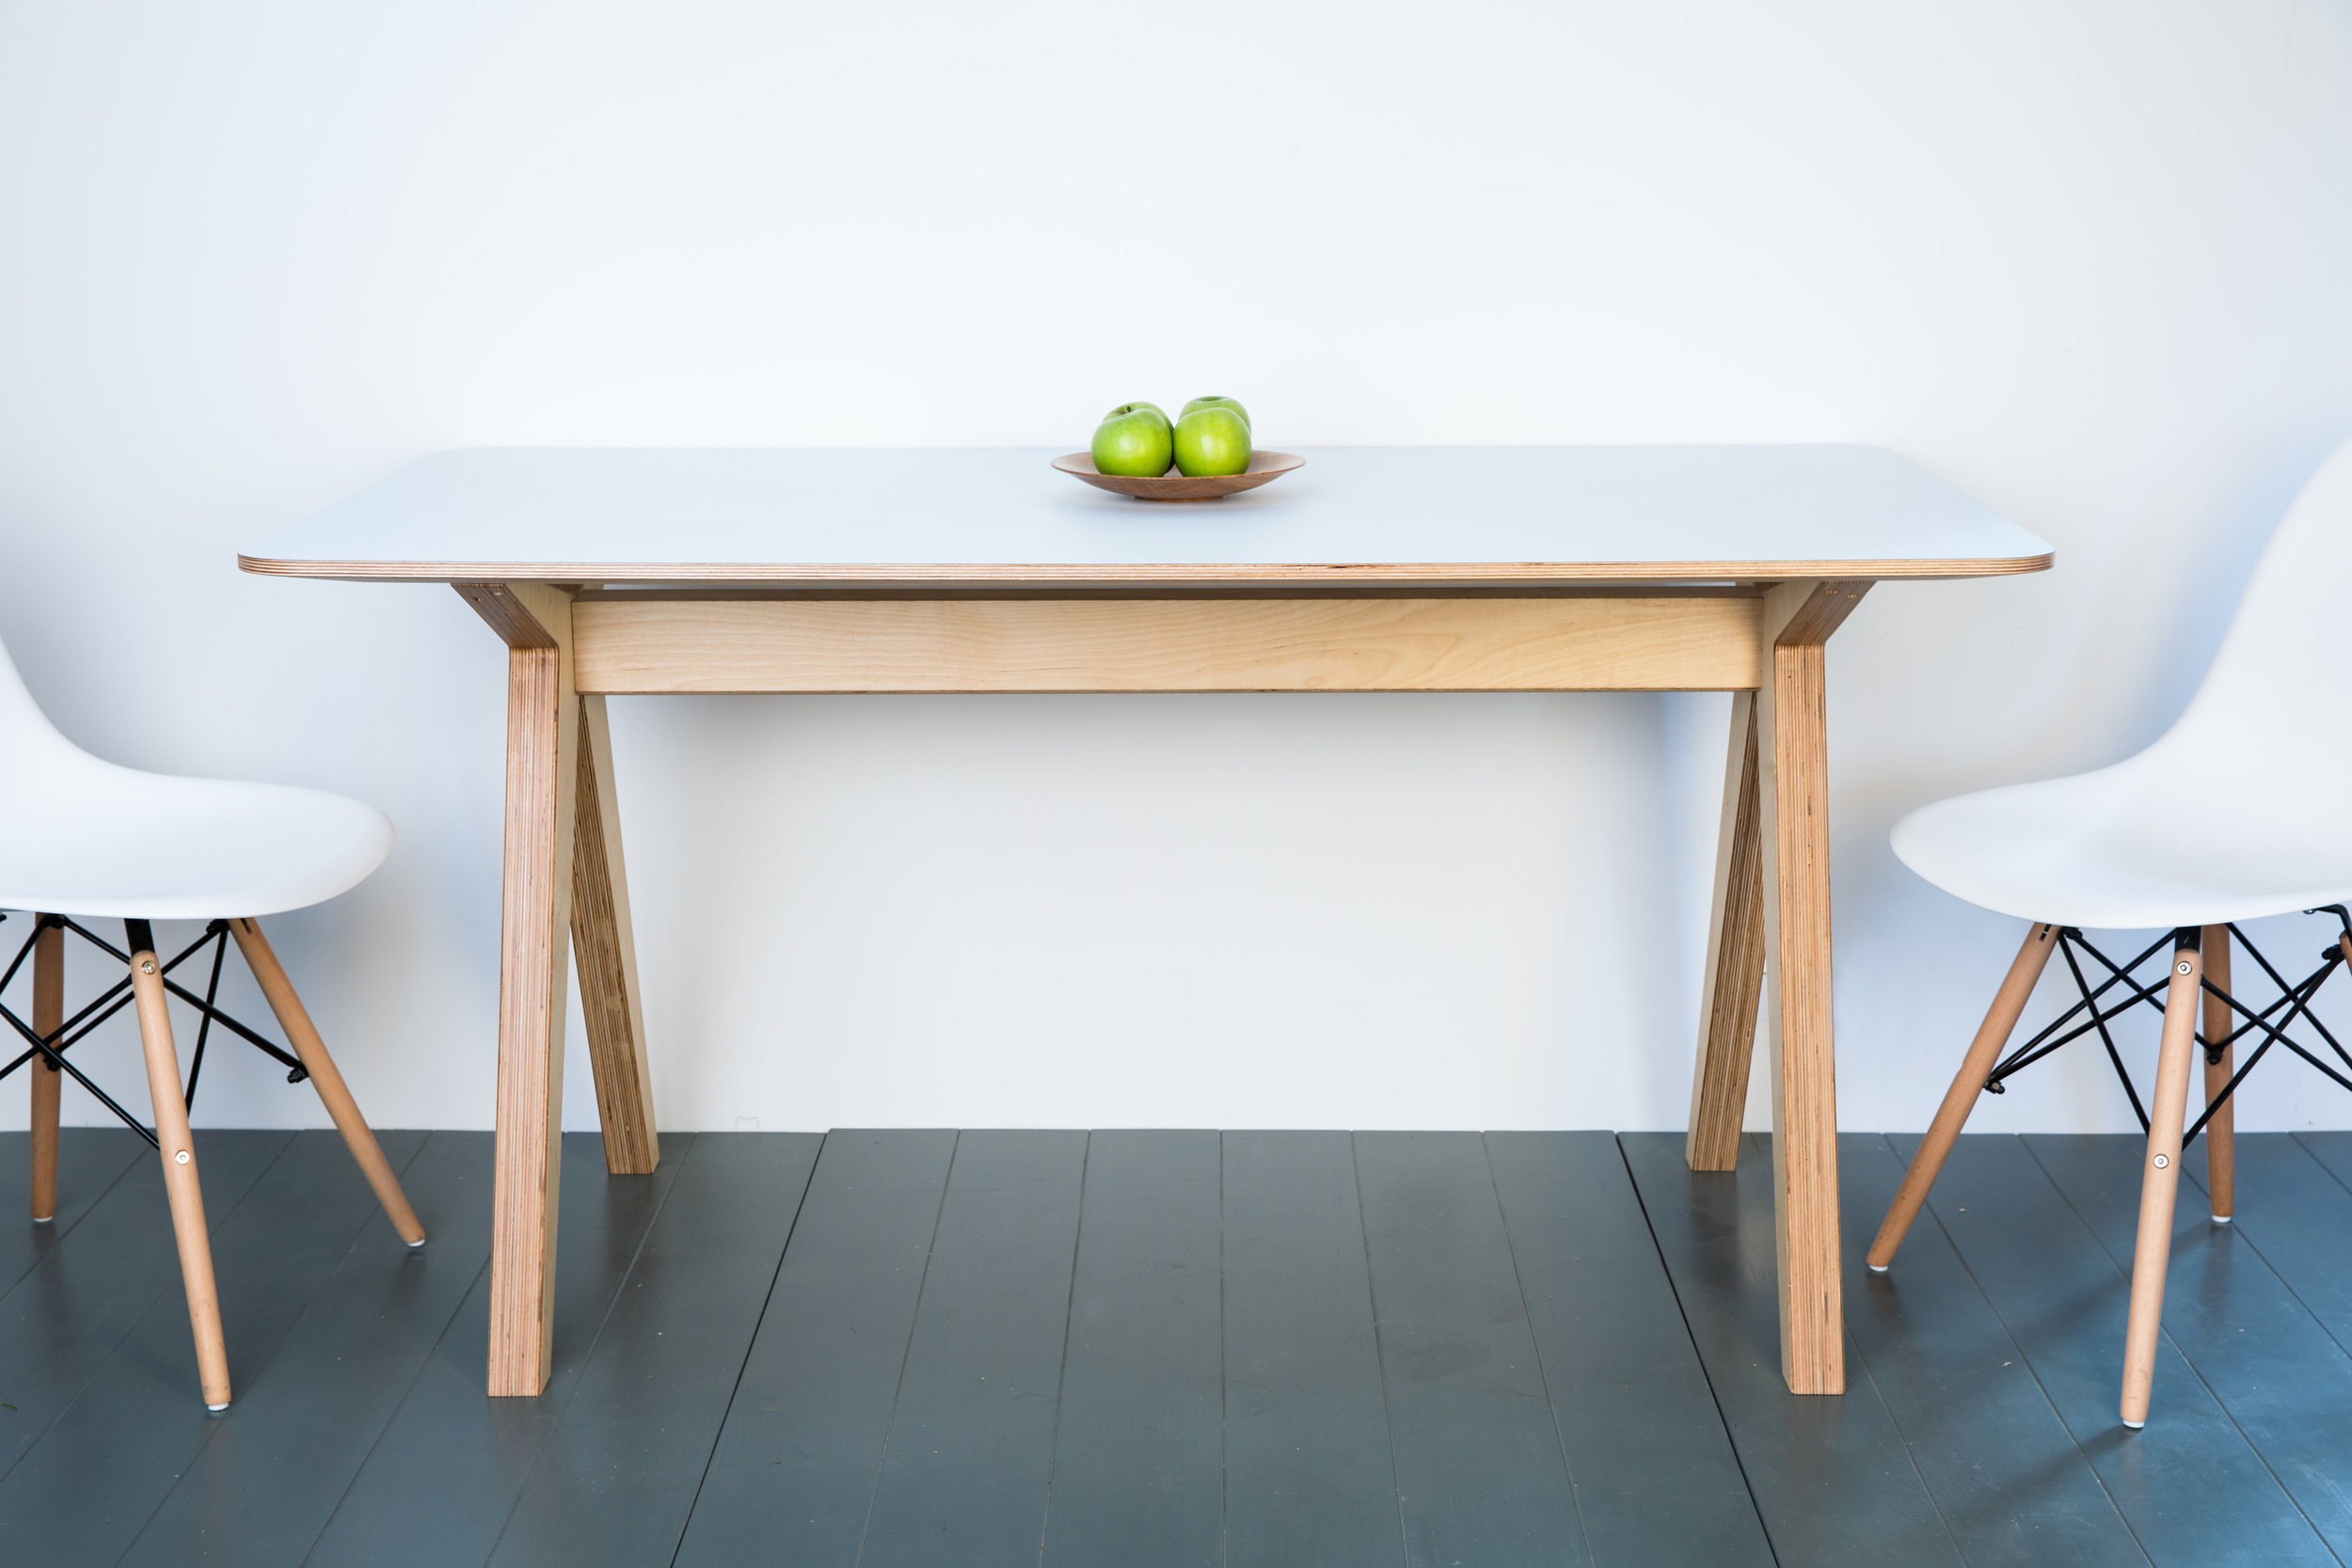 Kitchen trestle table in birch ply with a formica surface. This table is available in a colour of your choice and can be built to your exact size requirements.  material: birch ply, formica  dimensions as shown: l 1500 h 750 d 800  please contact for pricing